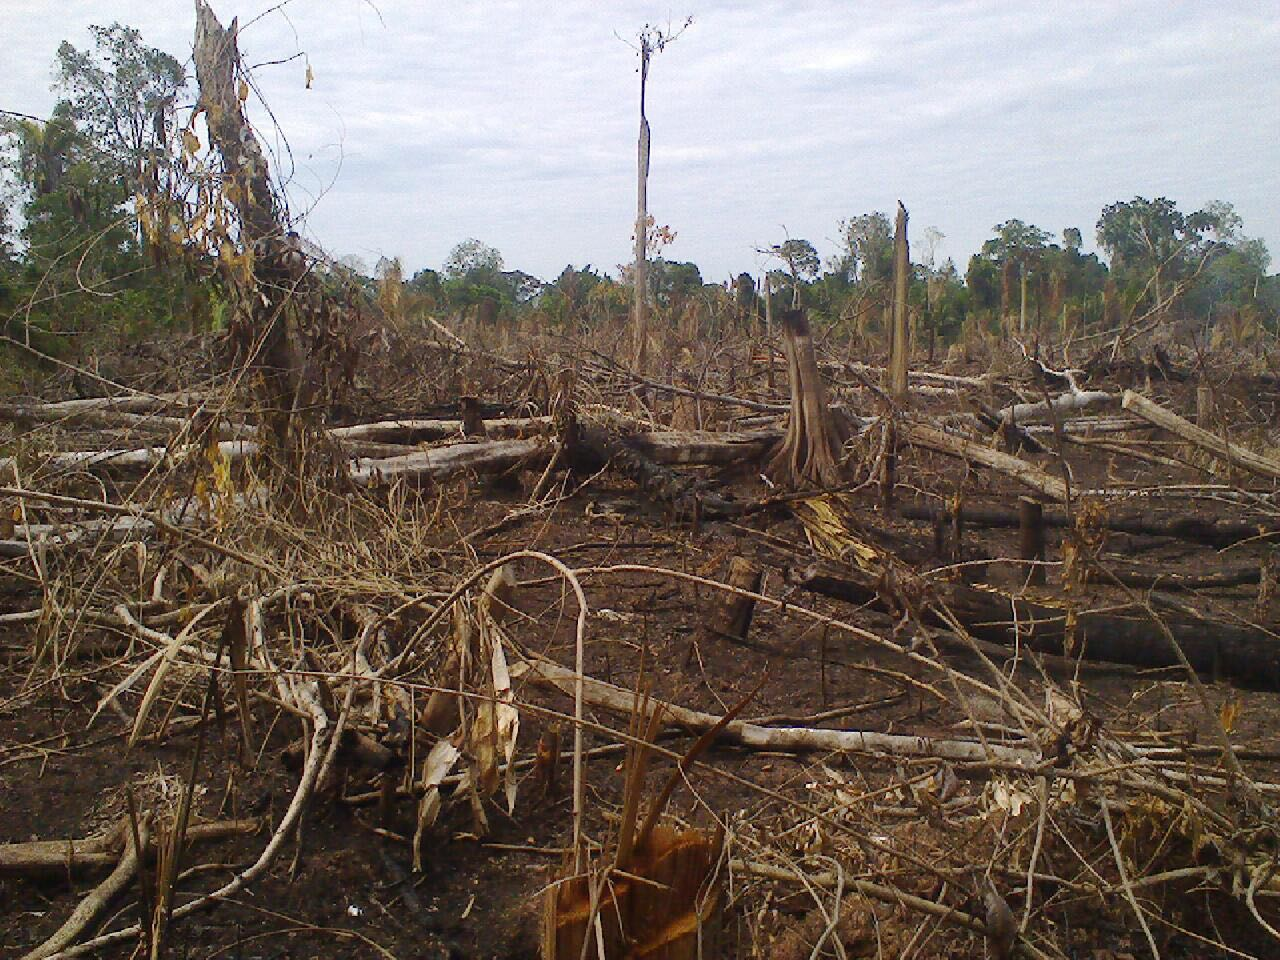 Deforestation by Plantaciones de Pucallpa SAC. Photo by Iván Flores, leader of the community of Santa Clara de Uchunya